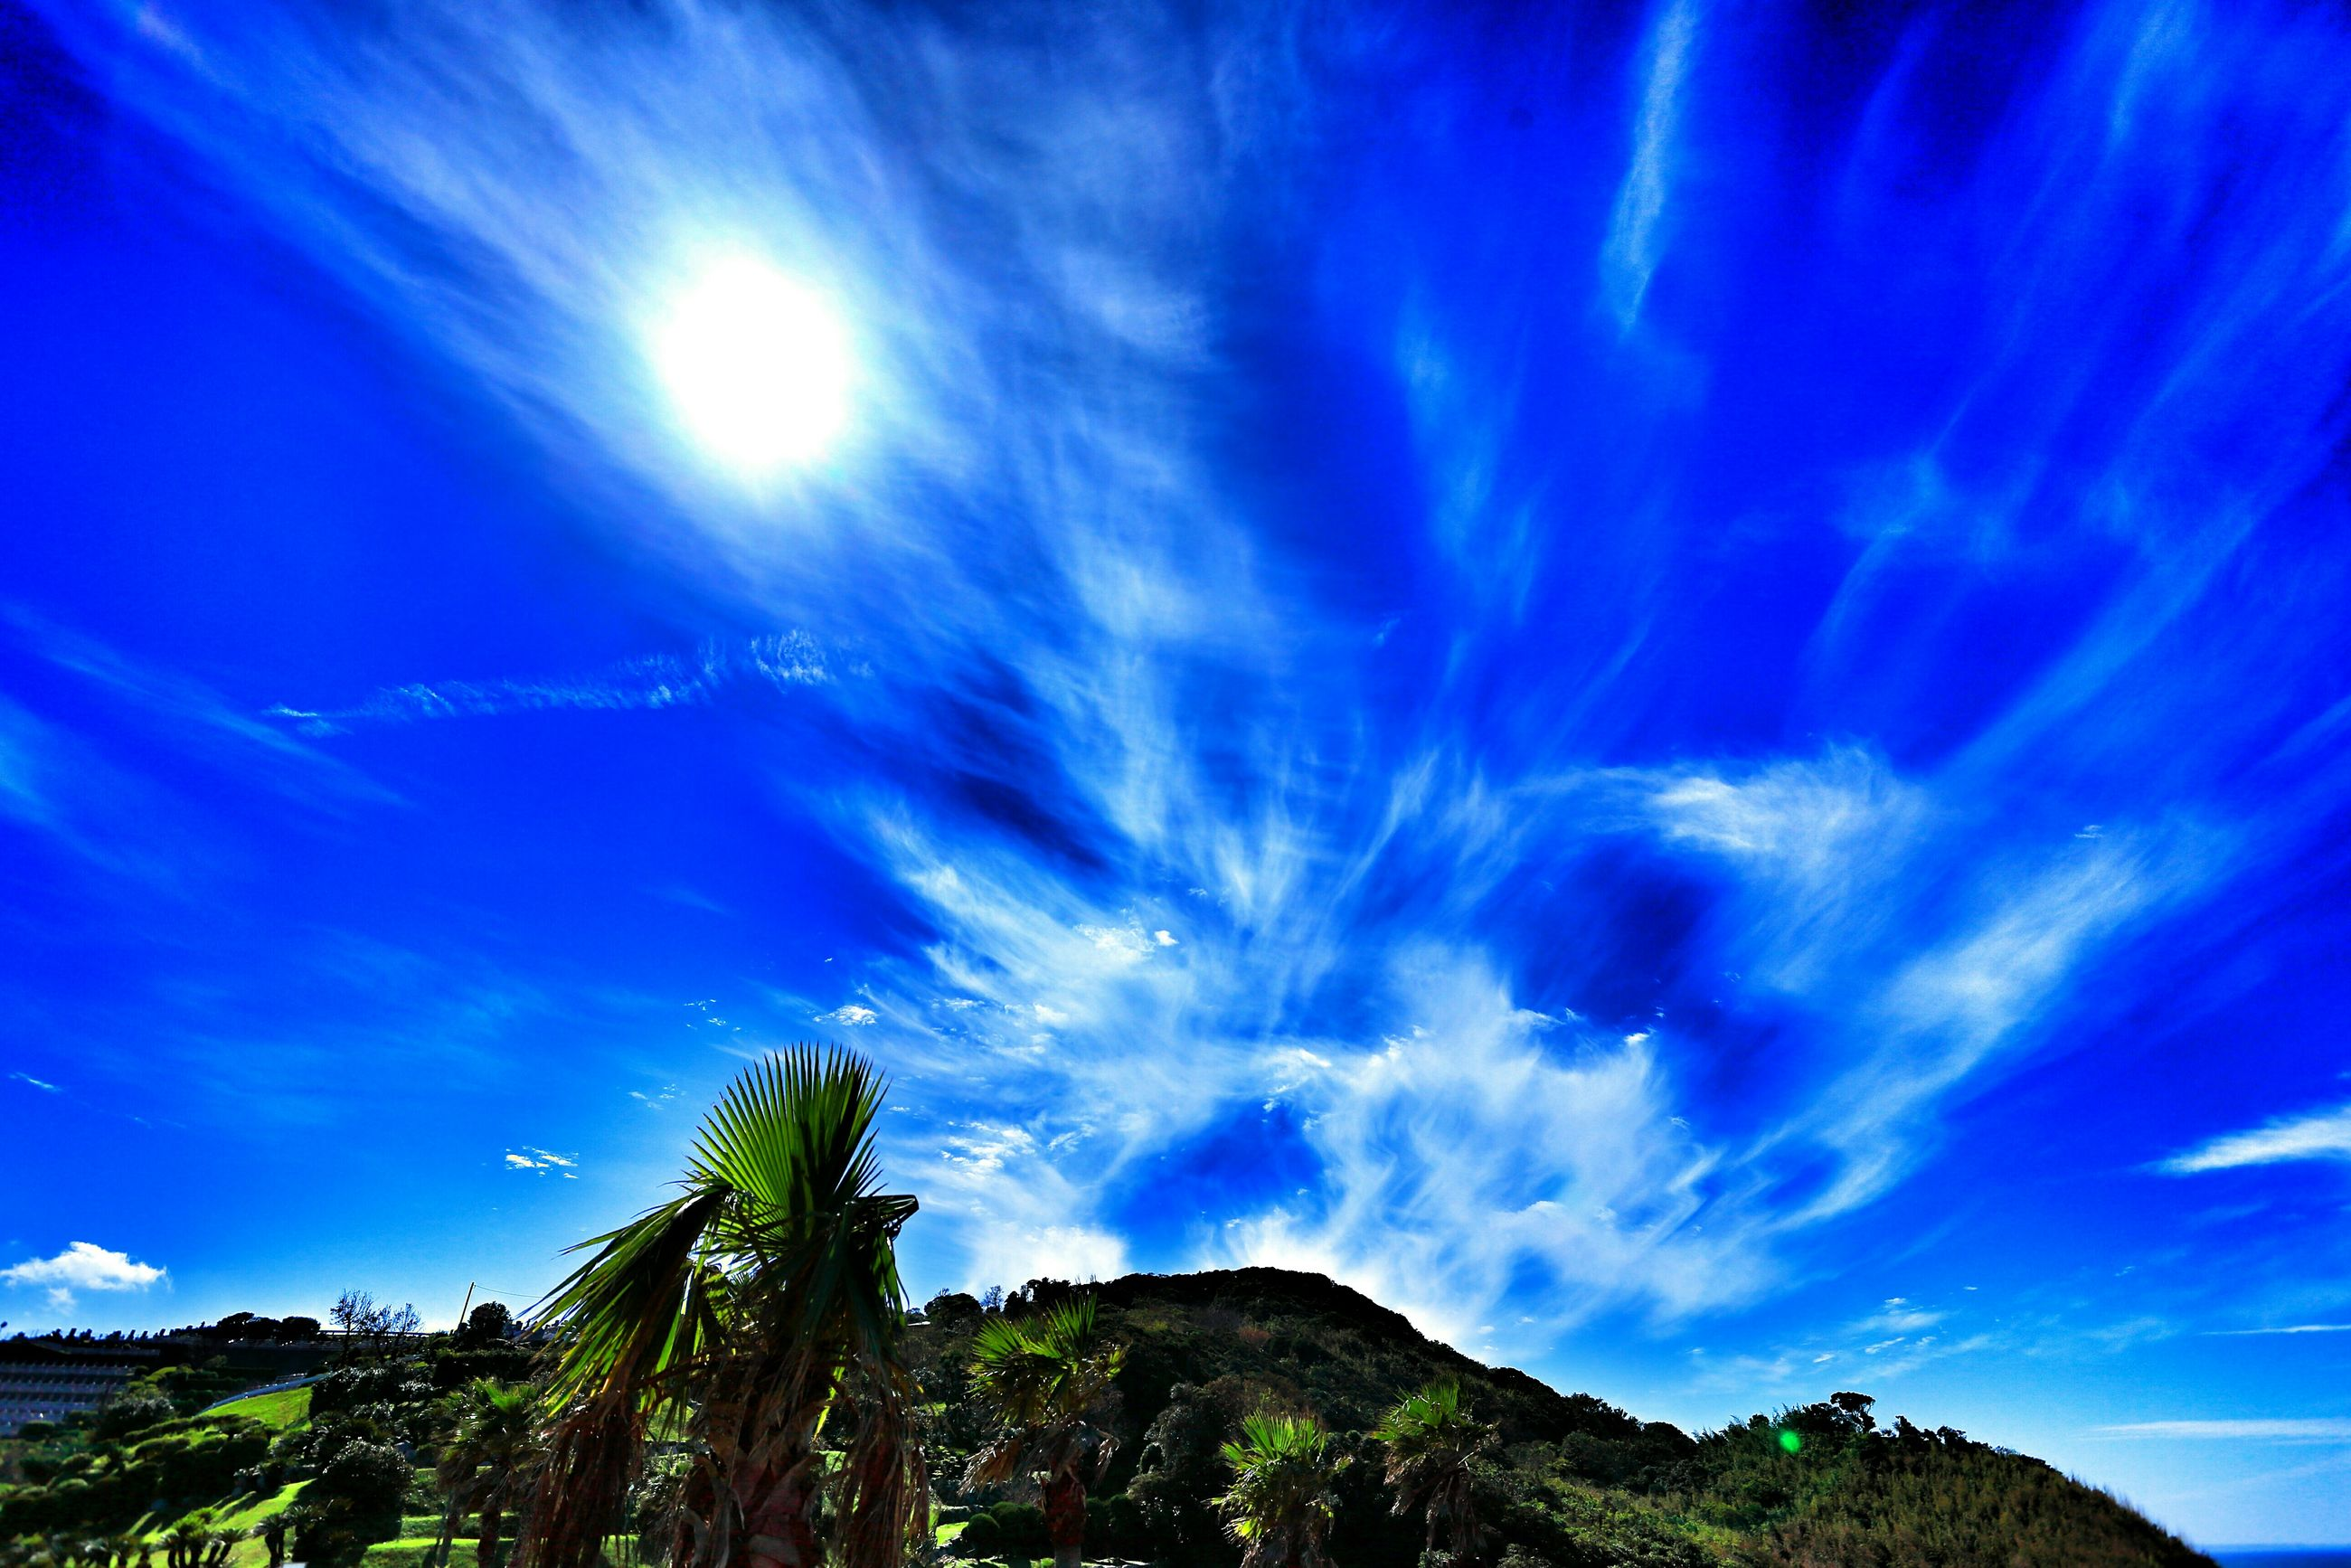 blue, tranquility, sky, tranquil scene, beauty in nature, scenics, sunlight, low angle view, nature, sunbeam, sun, cloud - sky, tree, mountain, idyllic, cloud, landscape, lens flare, non-urban scene, day